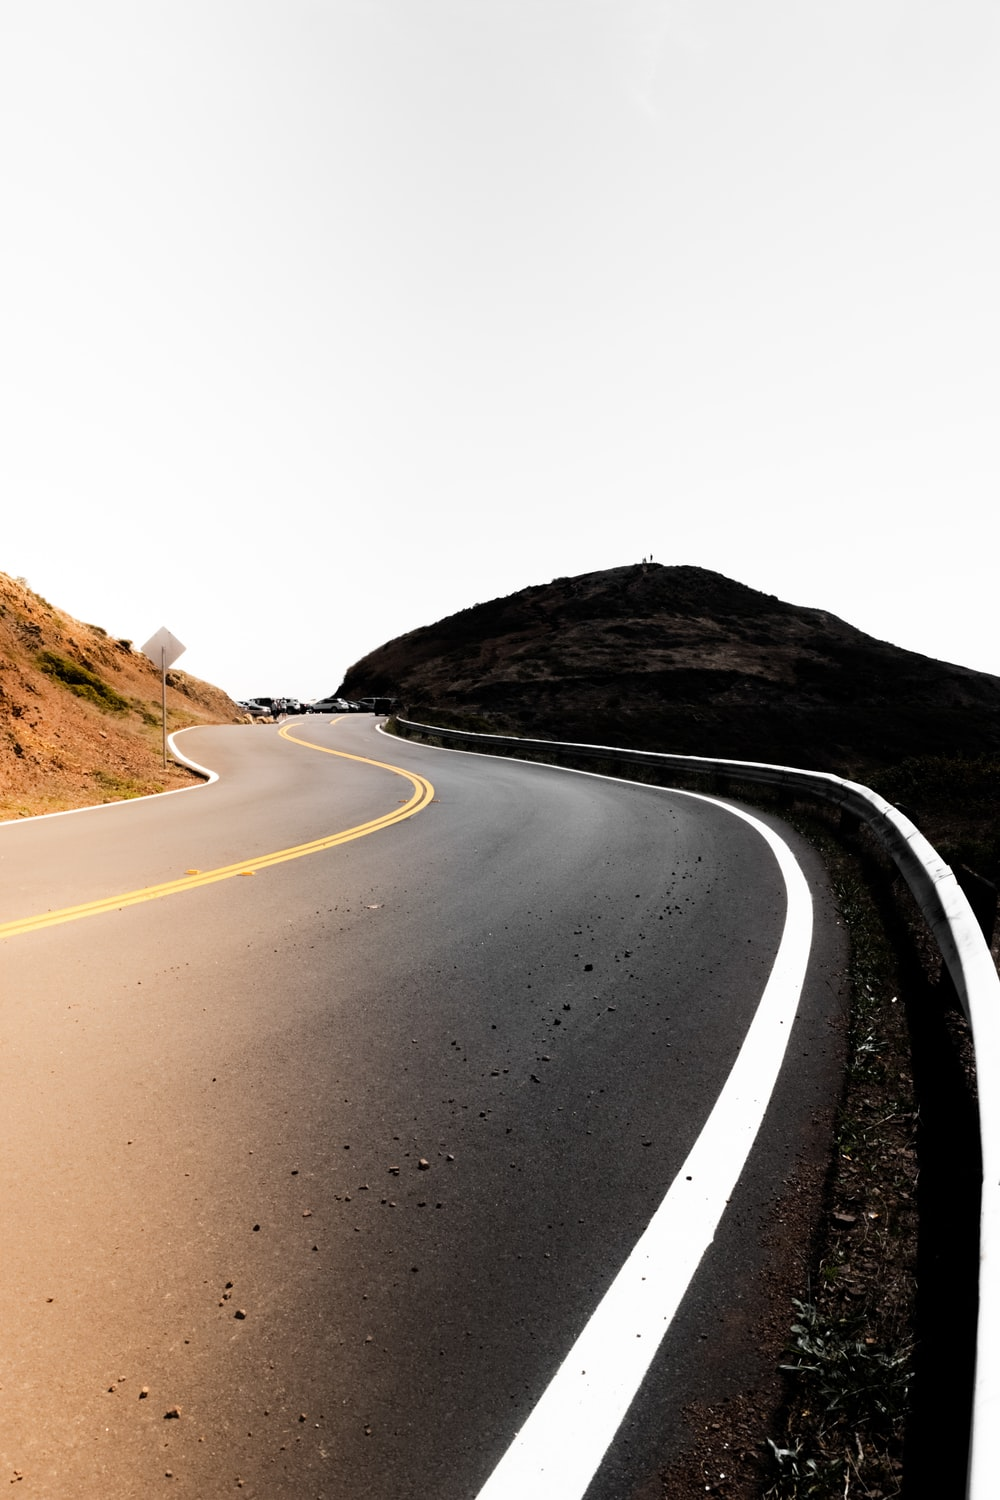 20 Road Backgrounds Hq Download Free Images On Unsplash .kare, cb background png, editing background hd, hd background images for photoshop editing 1080p free download, jb editz cb background free hey guys welcome back to jb file. 20 road backgrounds hq download